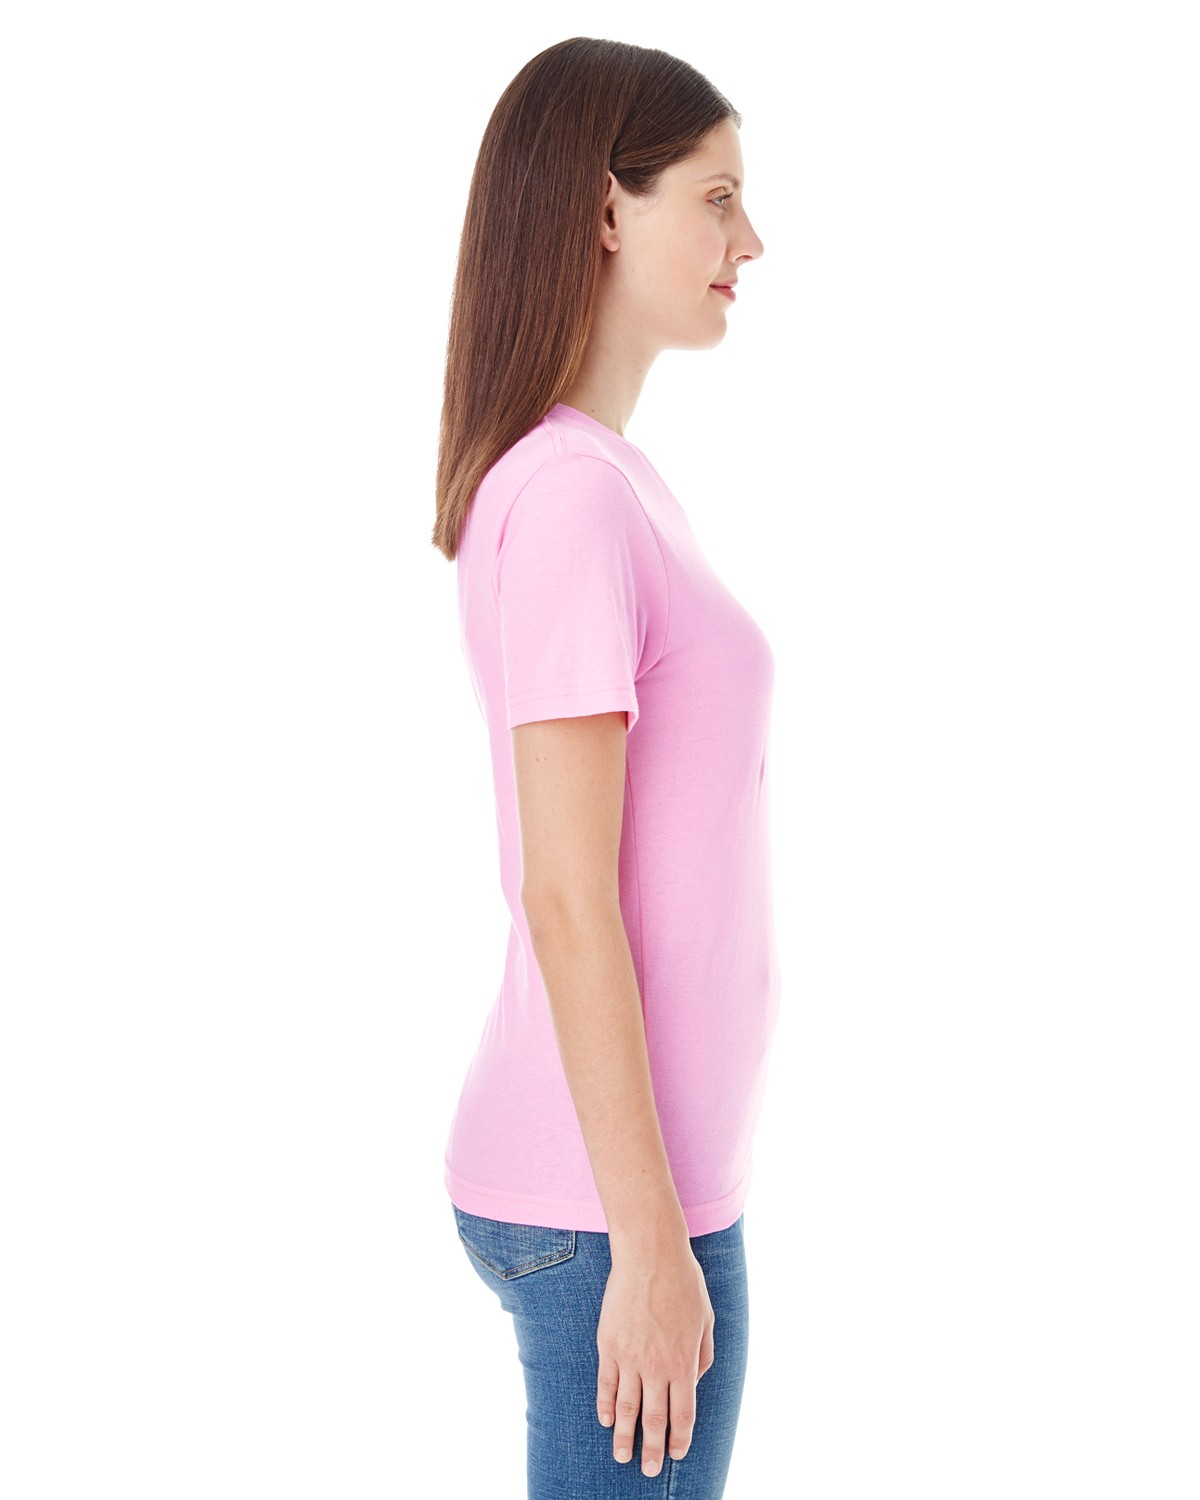 2356W American Apparel PINK